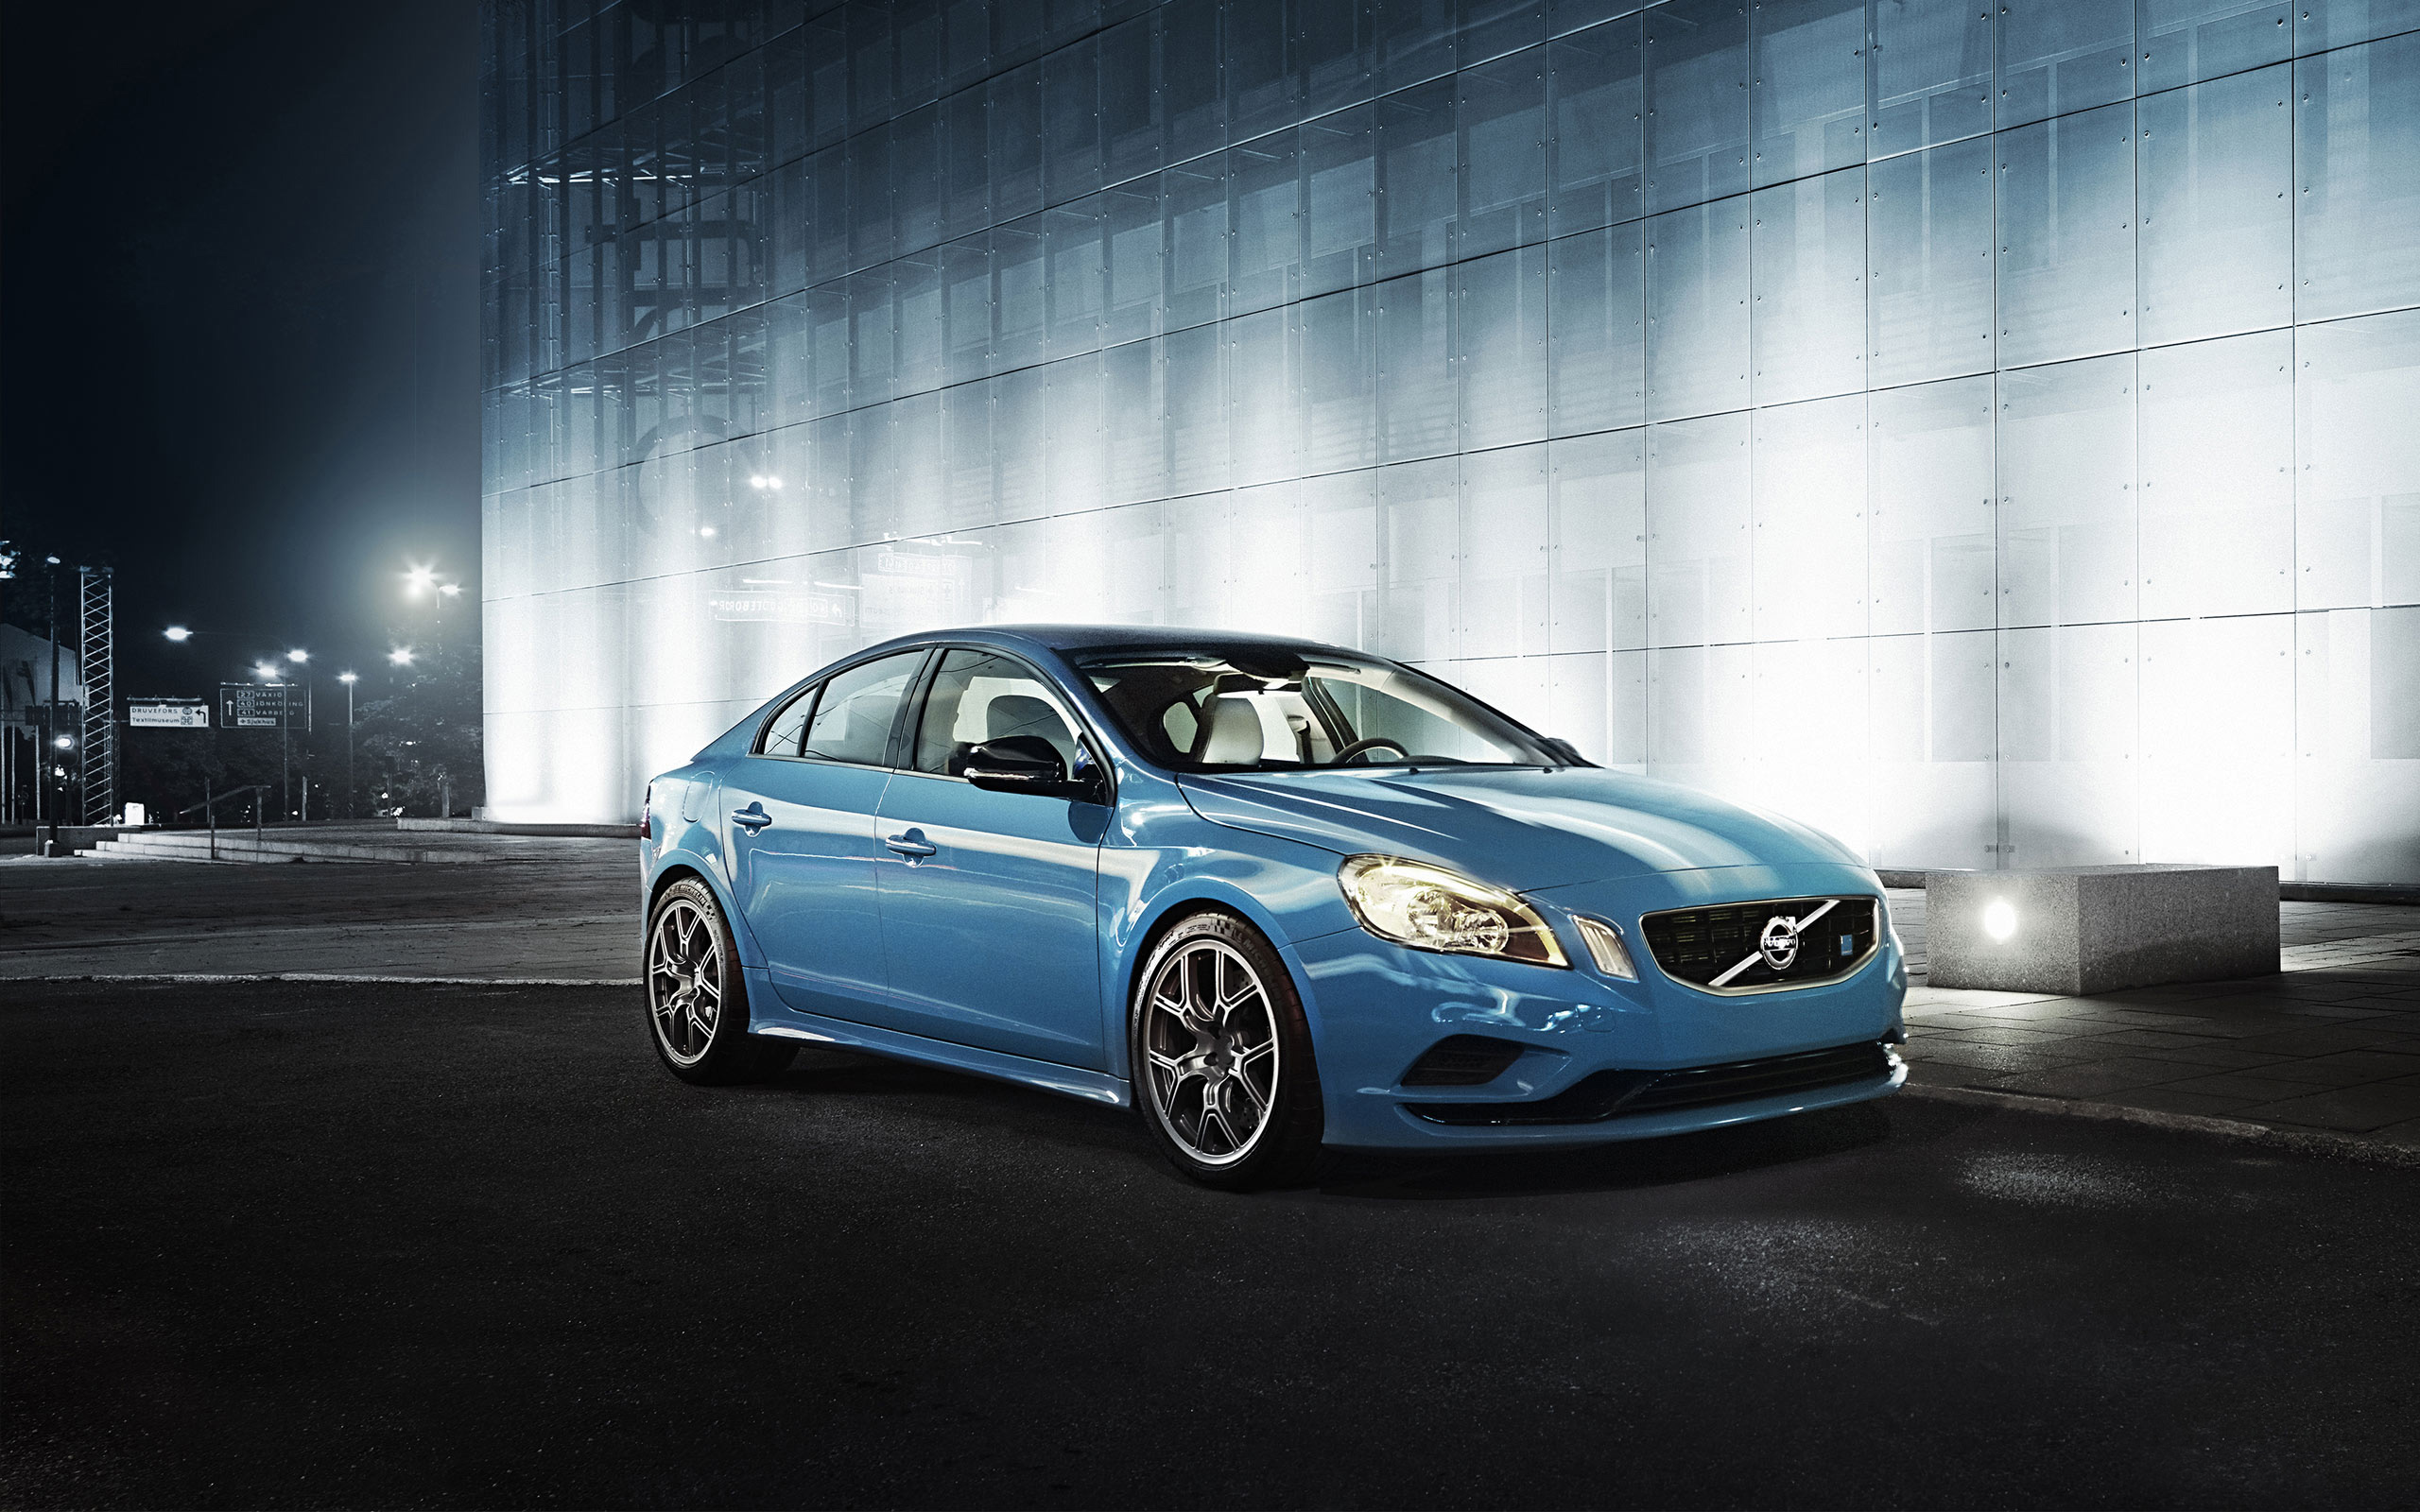 Volvo S60 Wallpapers and Background Images   stmednet 2560x1600